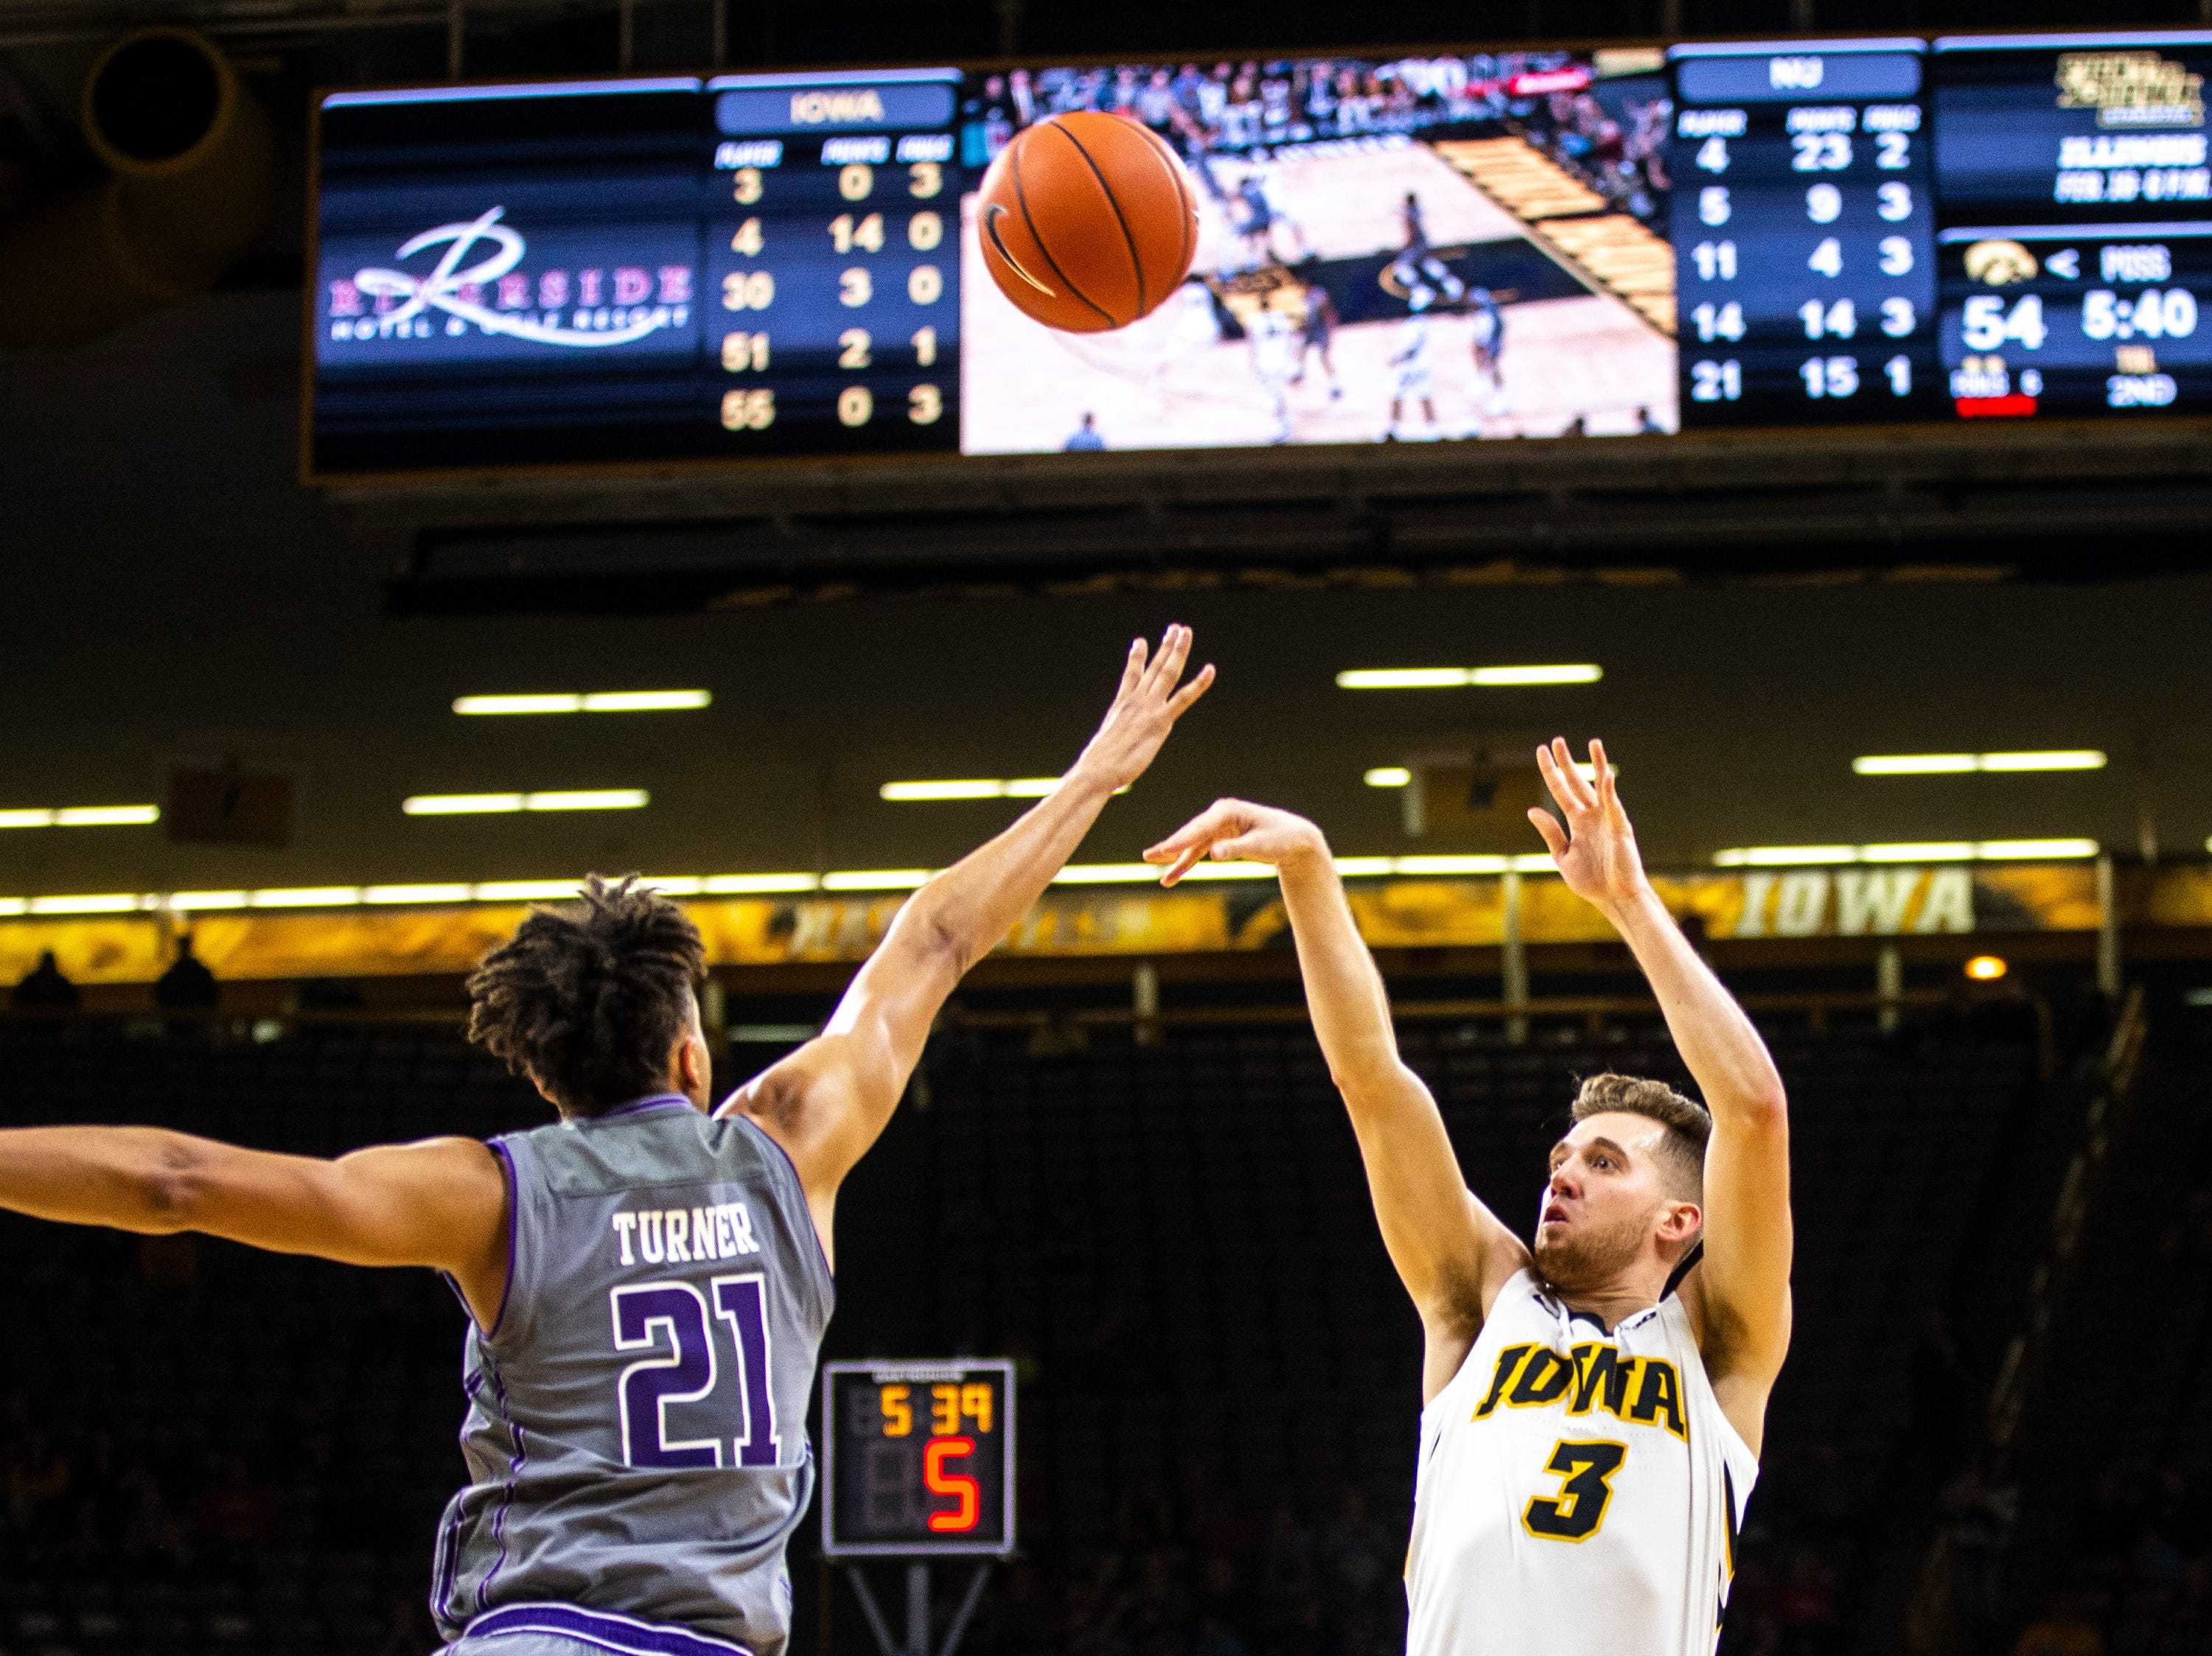 Iowa guard Jordan Bohannon (3) shoots a 3-point basket while Northwestern forward A.J. Turner (21) defends during a NCAA Big Ten Conference men's basketball game on Sunday, Feb. 10, 2019 at Carver-Hawkeye Arena in Iowa City, Iowa.